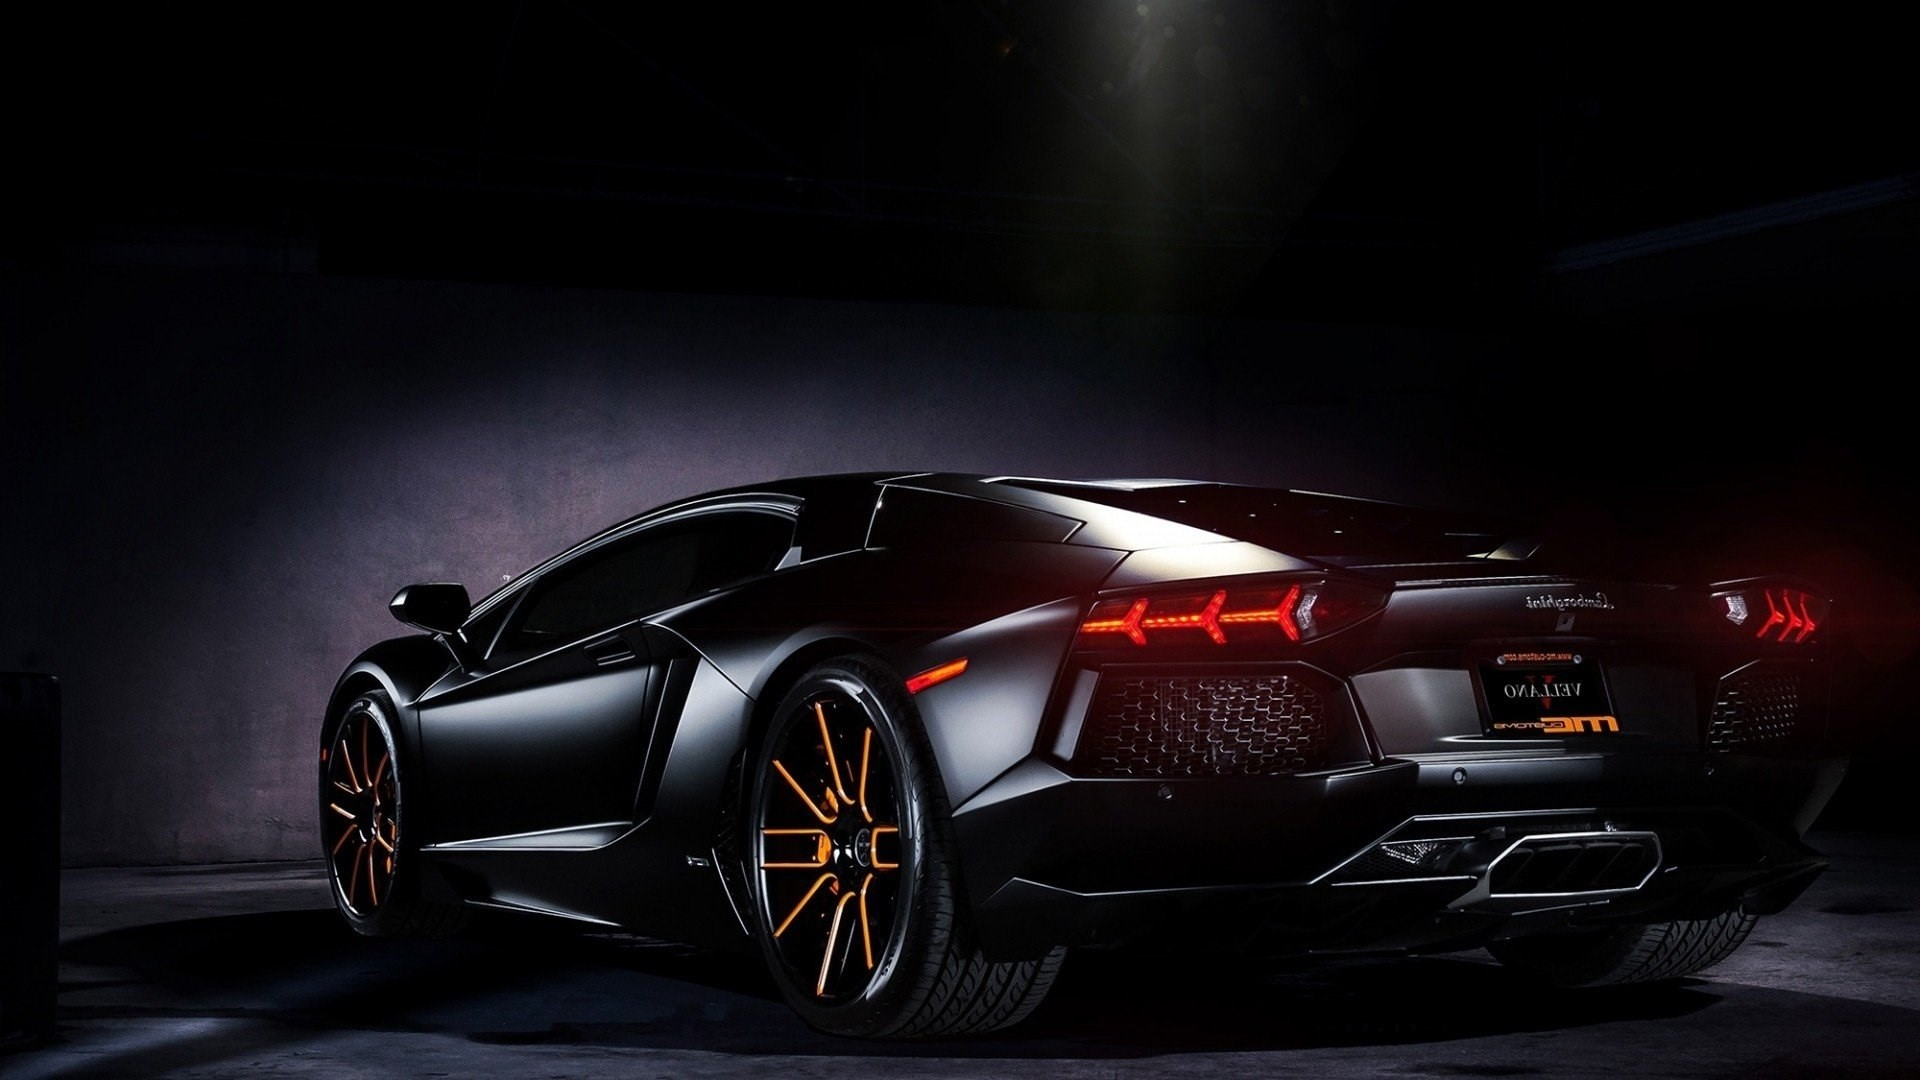 Pack De Wallpaper De Carros Full Hd: Lamborghini Wallpaper 1920x1080 (72+ Images